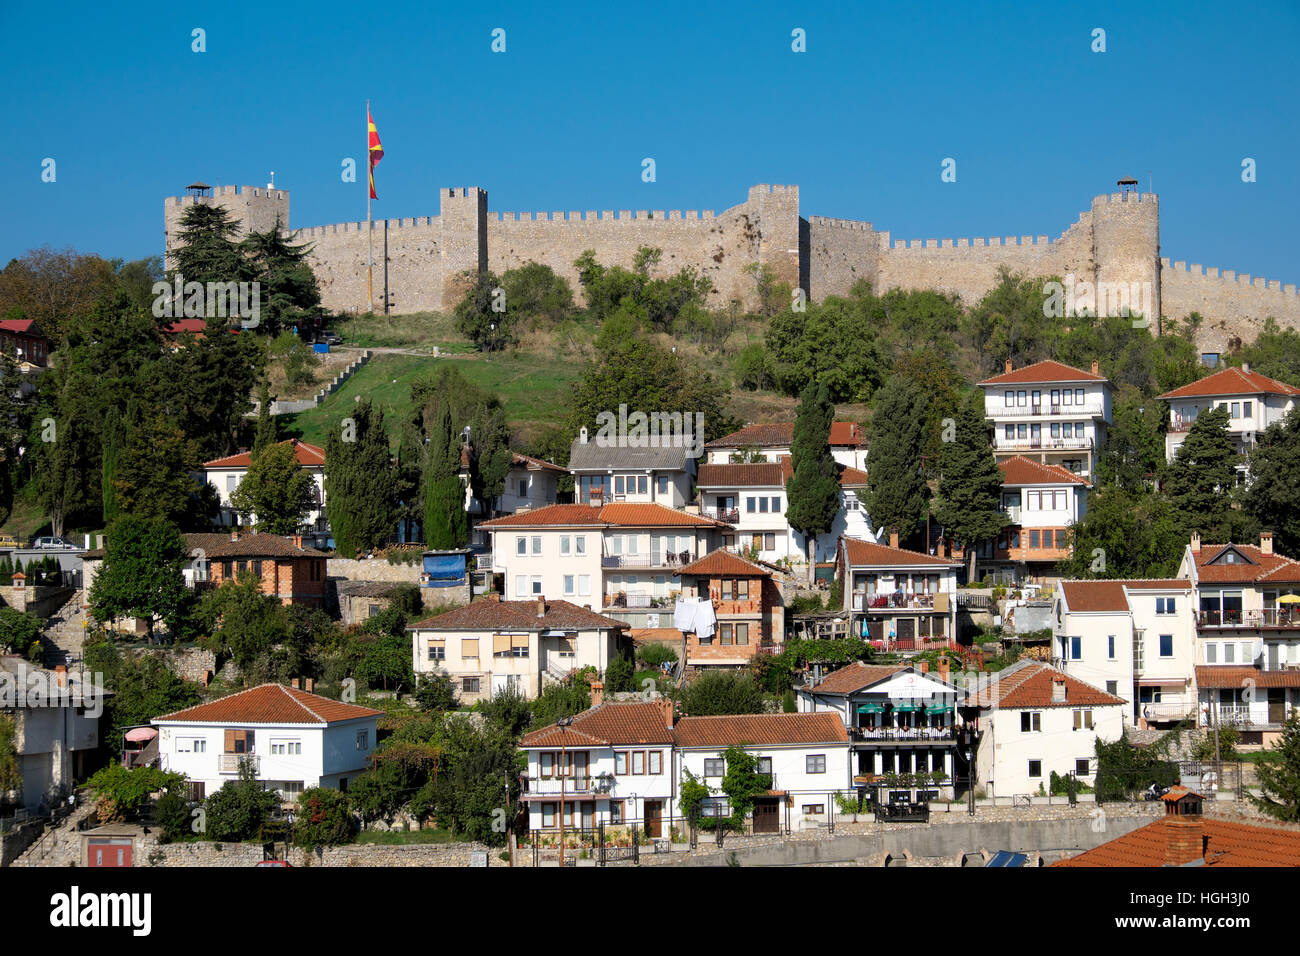 Fortress with the city of Ohrid, Macedonia - Stock Image